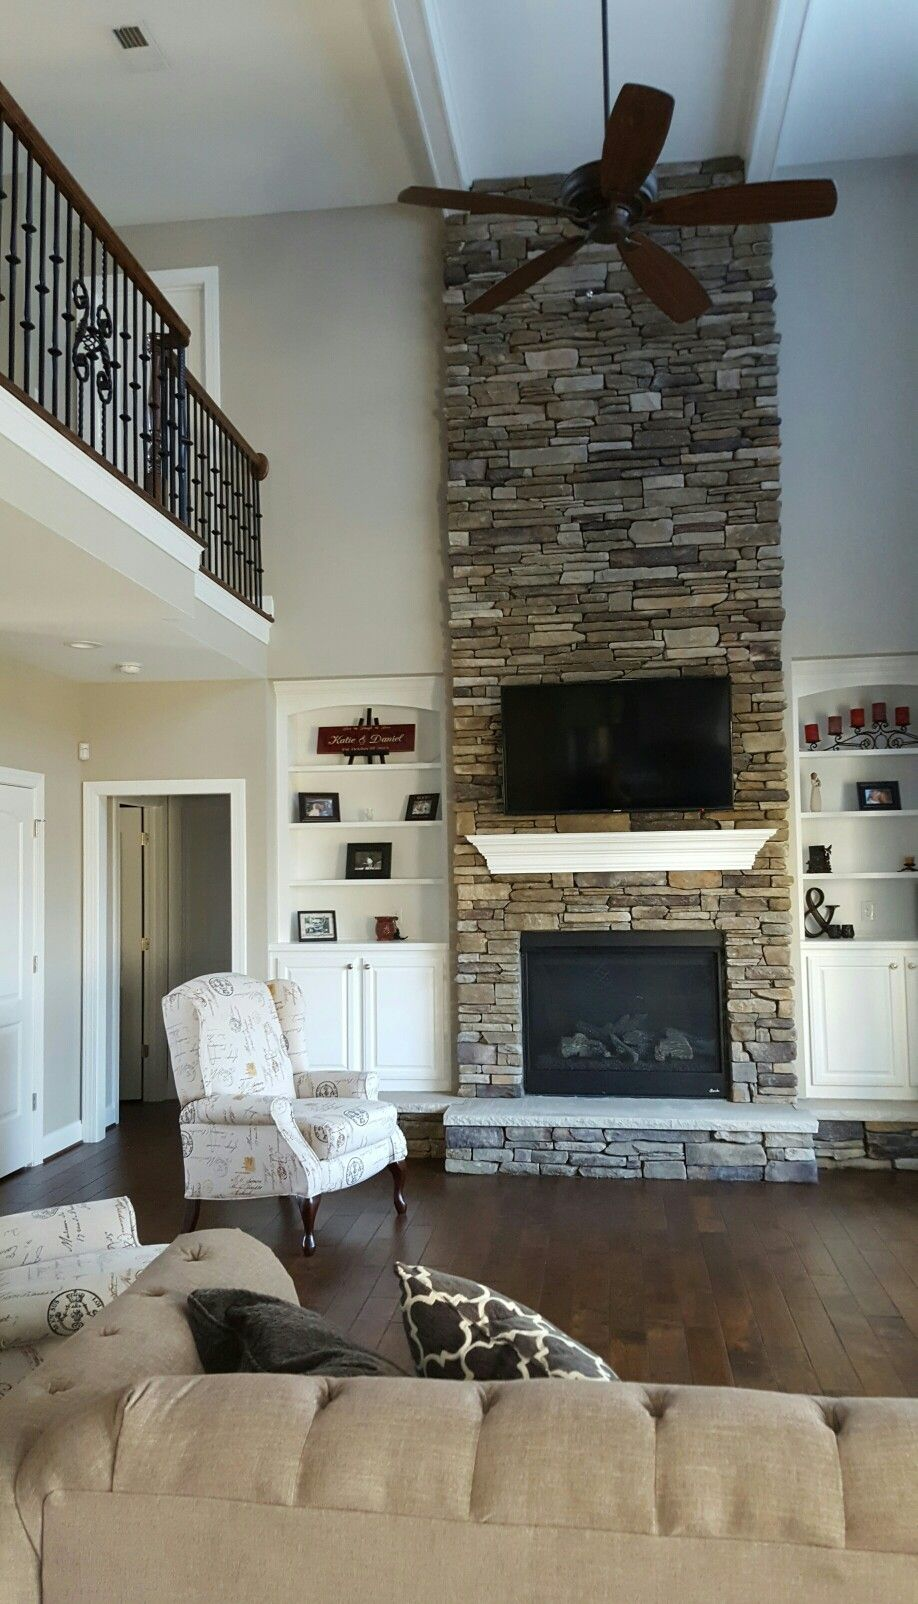 Great Room With Two Story Stone Fireplace And Catwalk